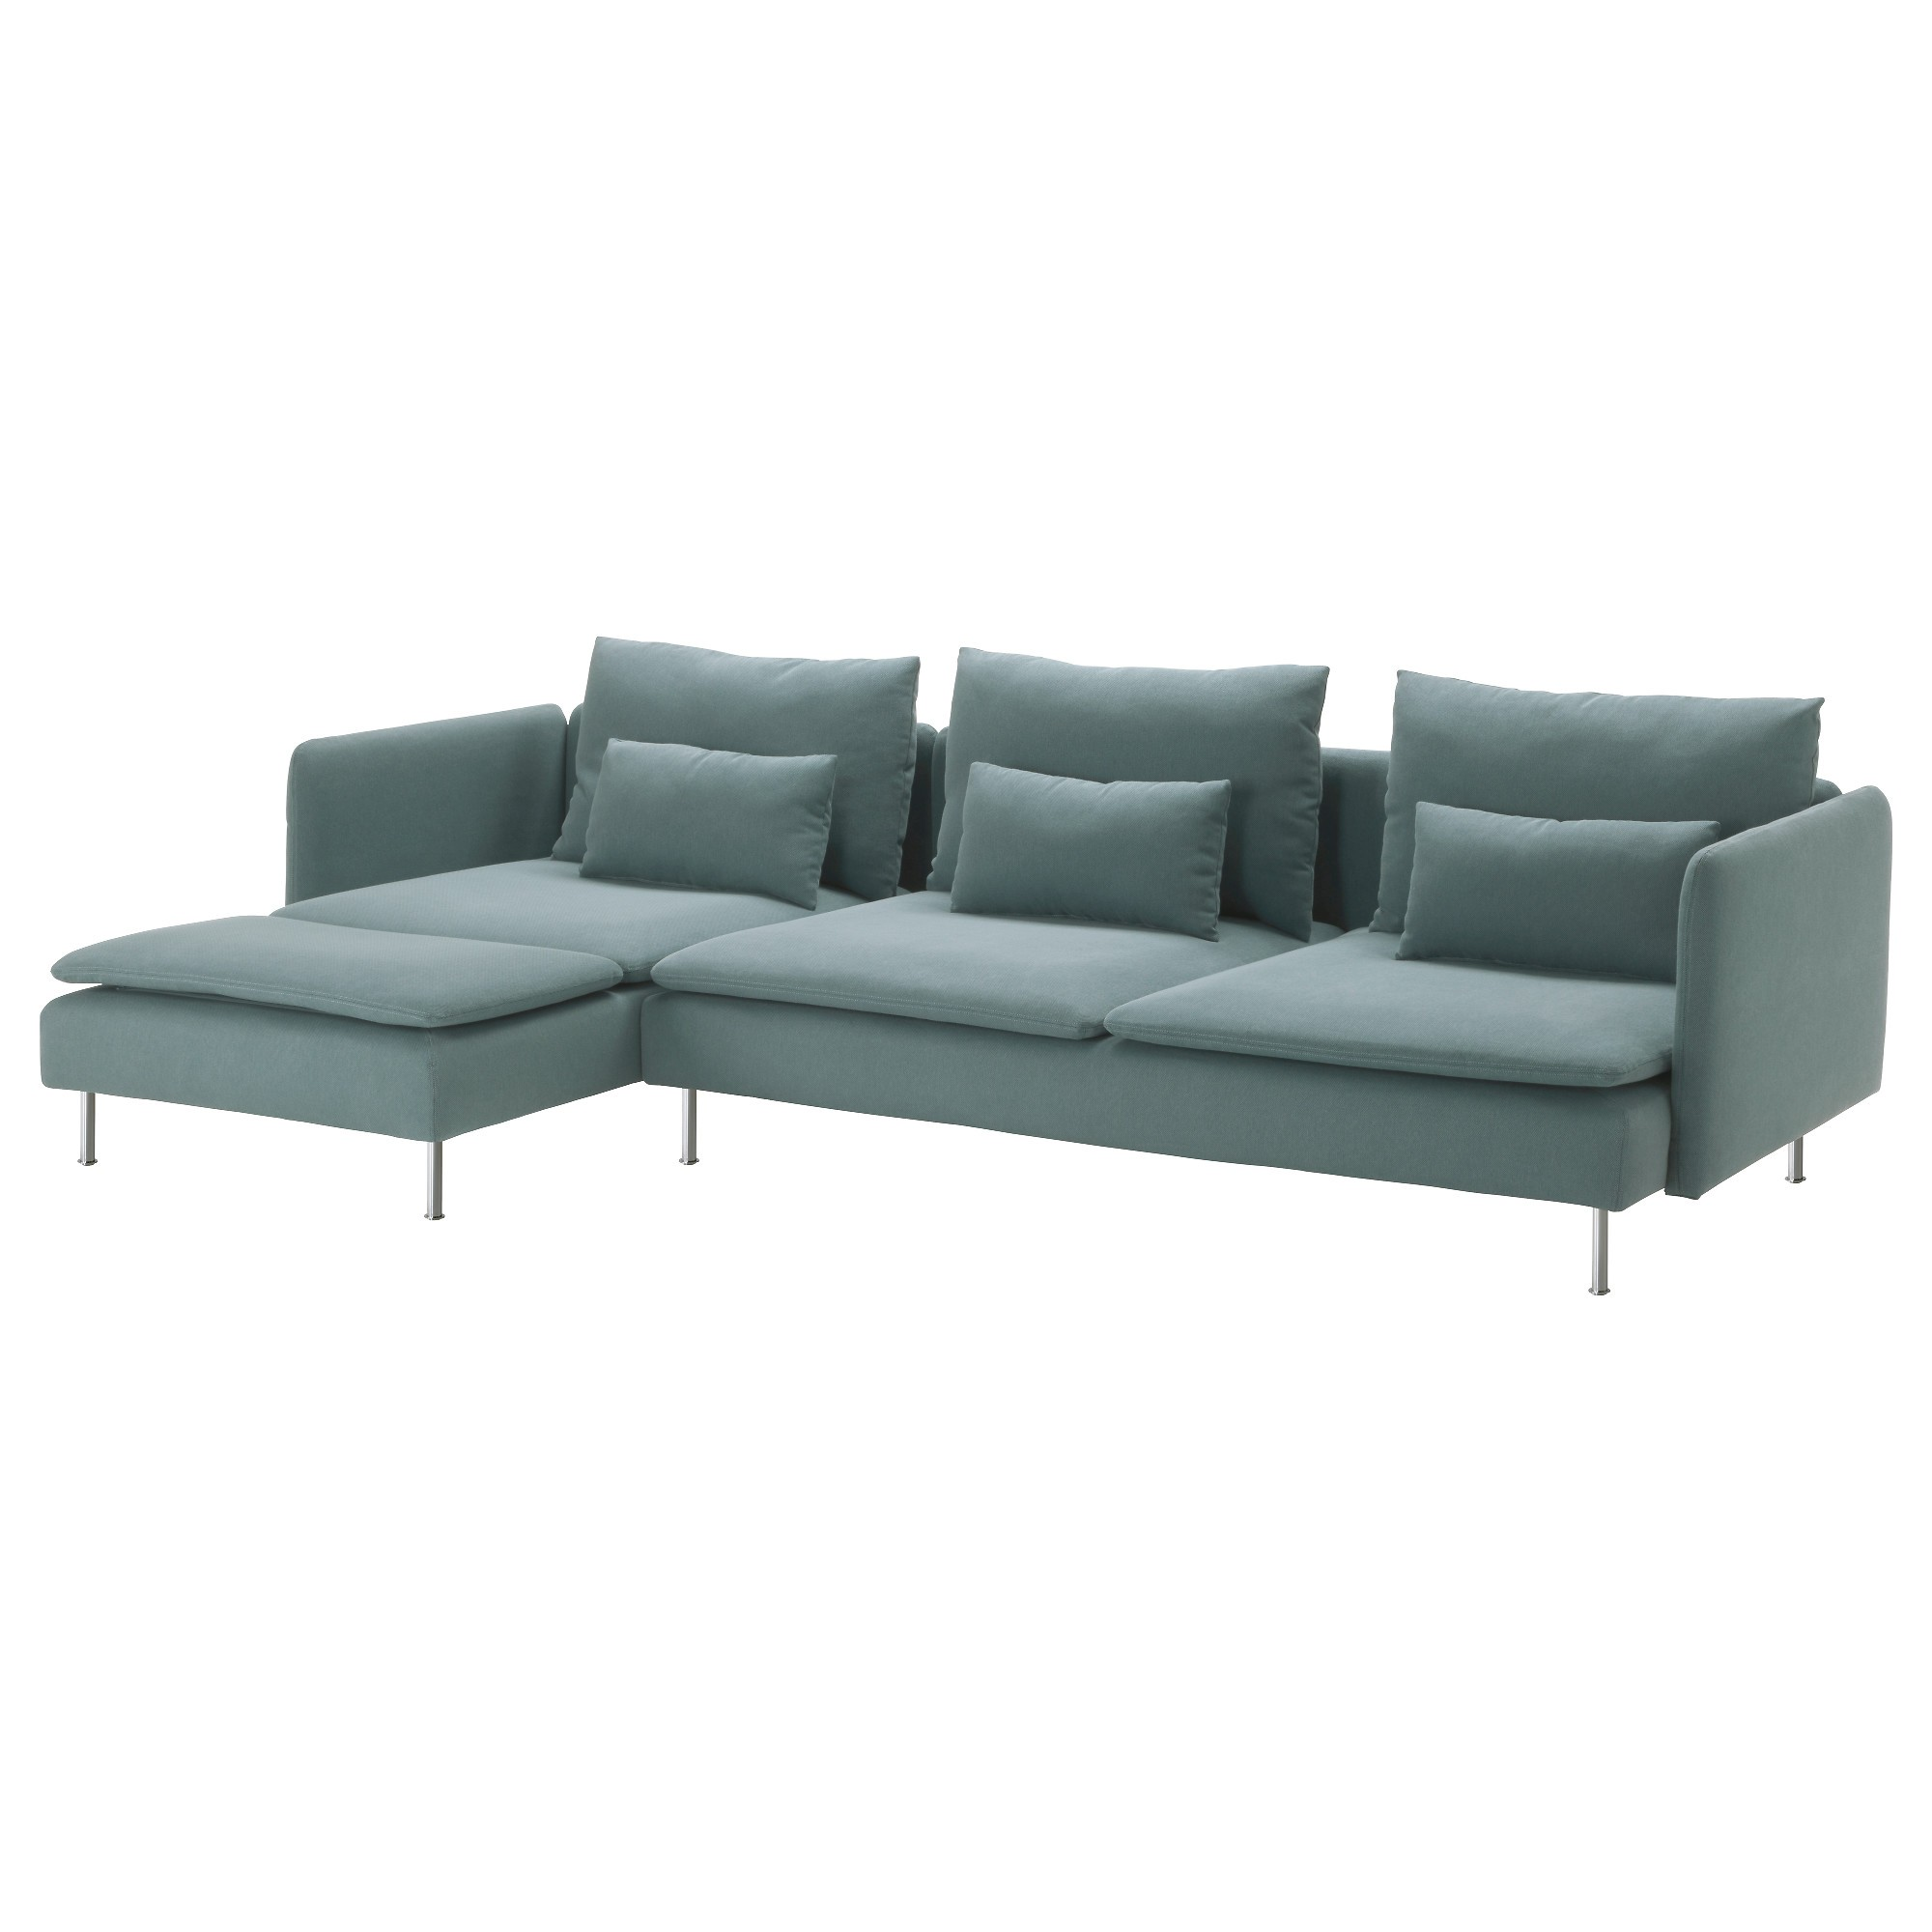 Ikea soderhamn sofa Wonderful S Derhamn Sectional 4 Seat Samsta Dark Gray Ikea Decoration